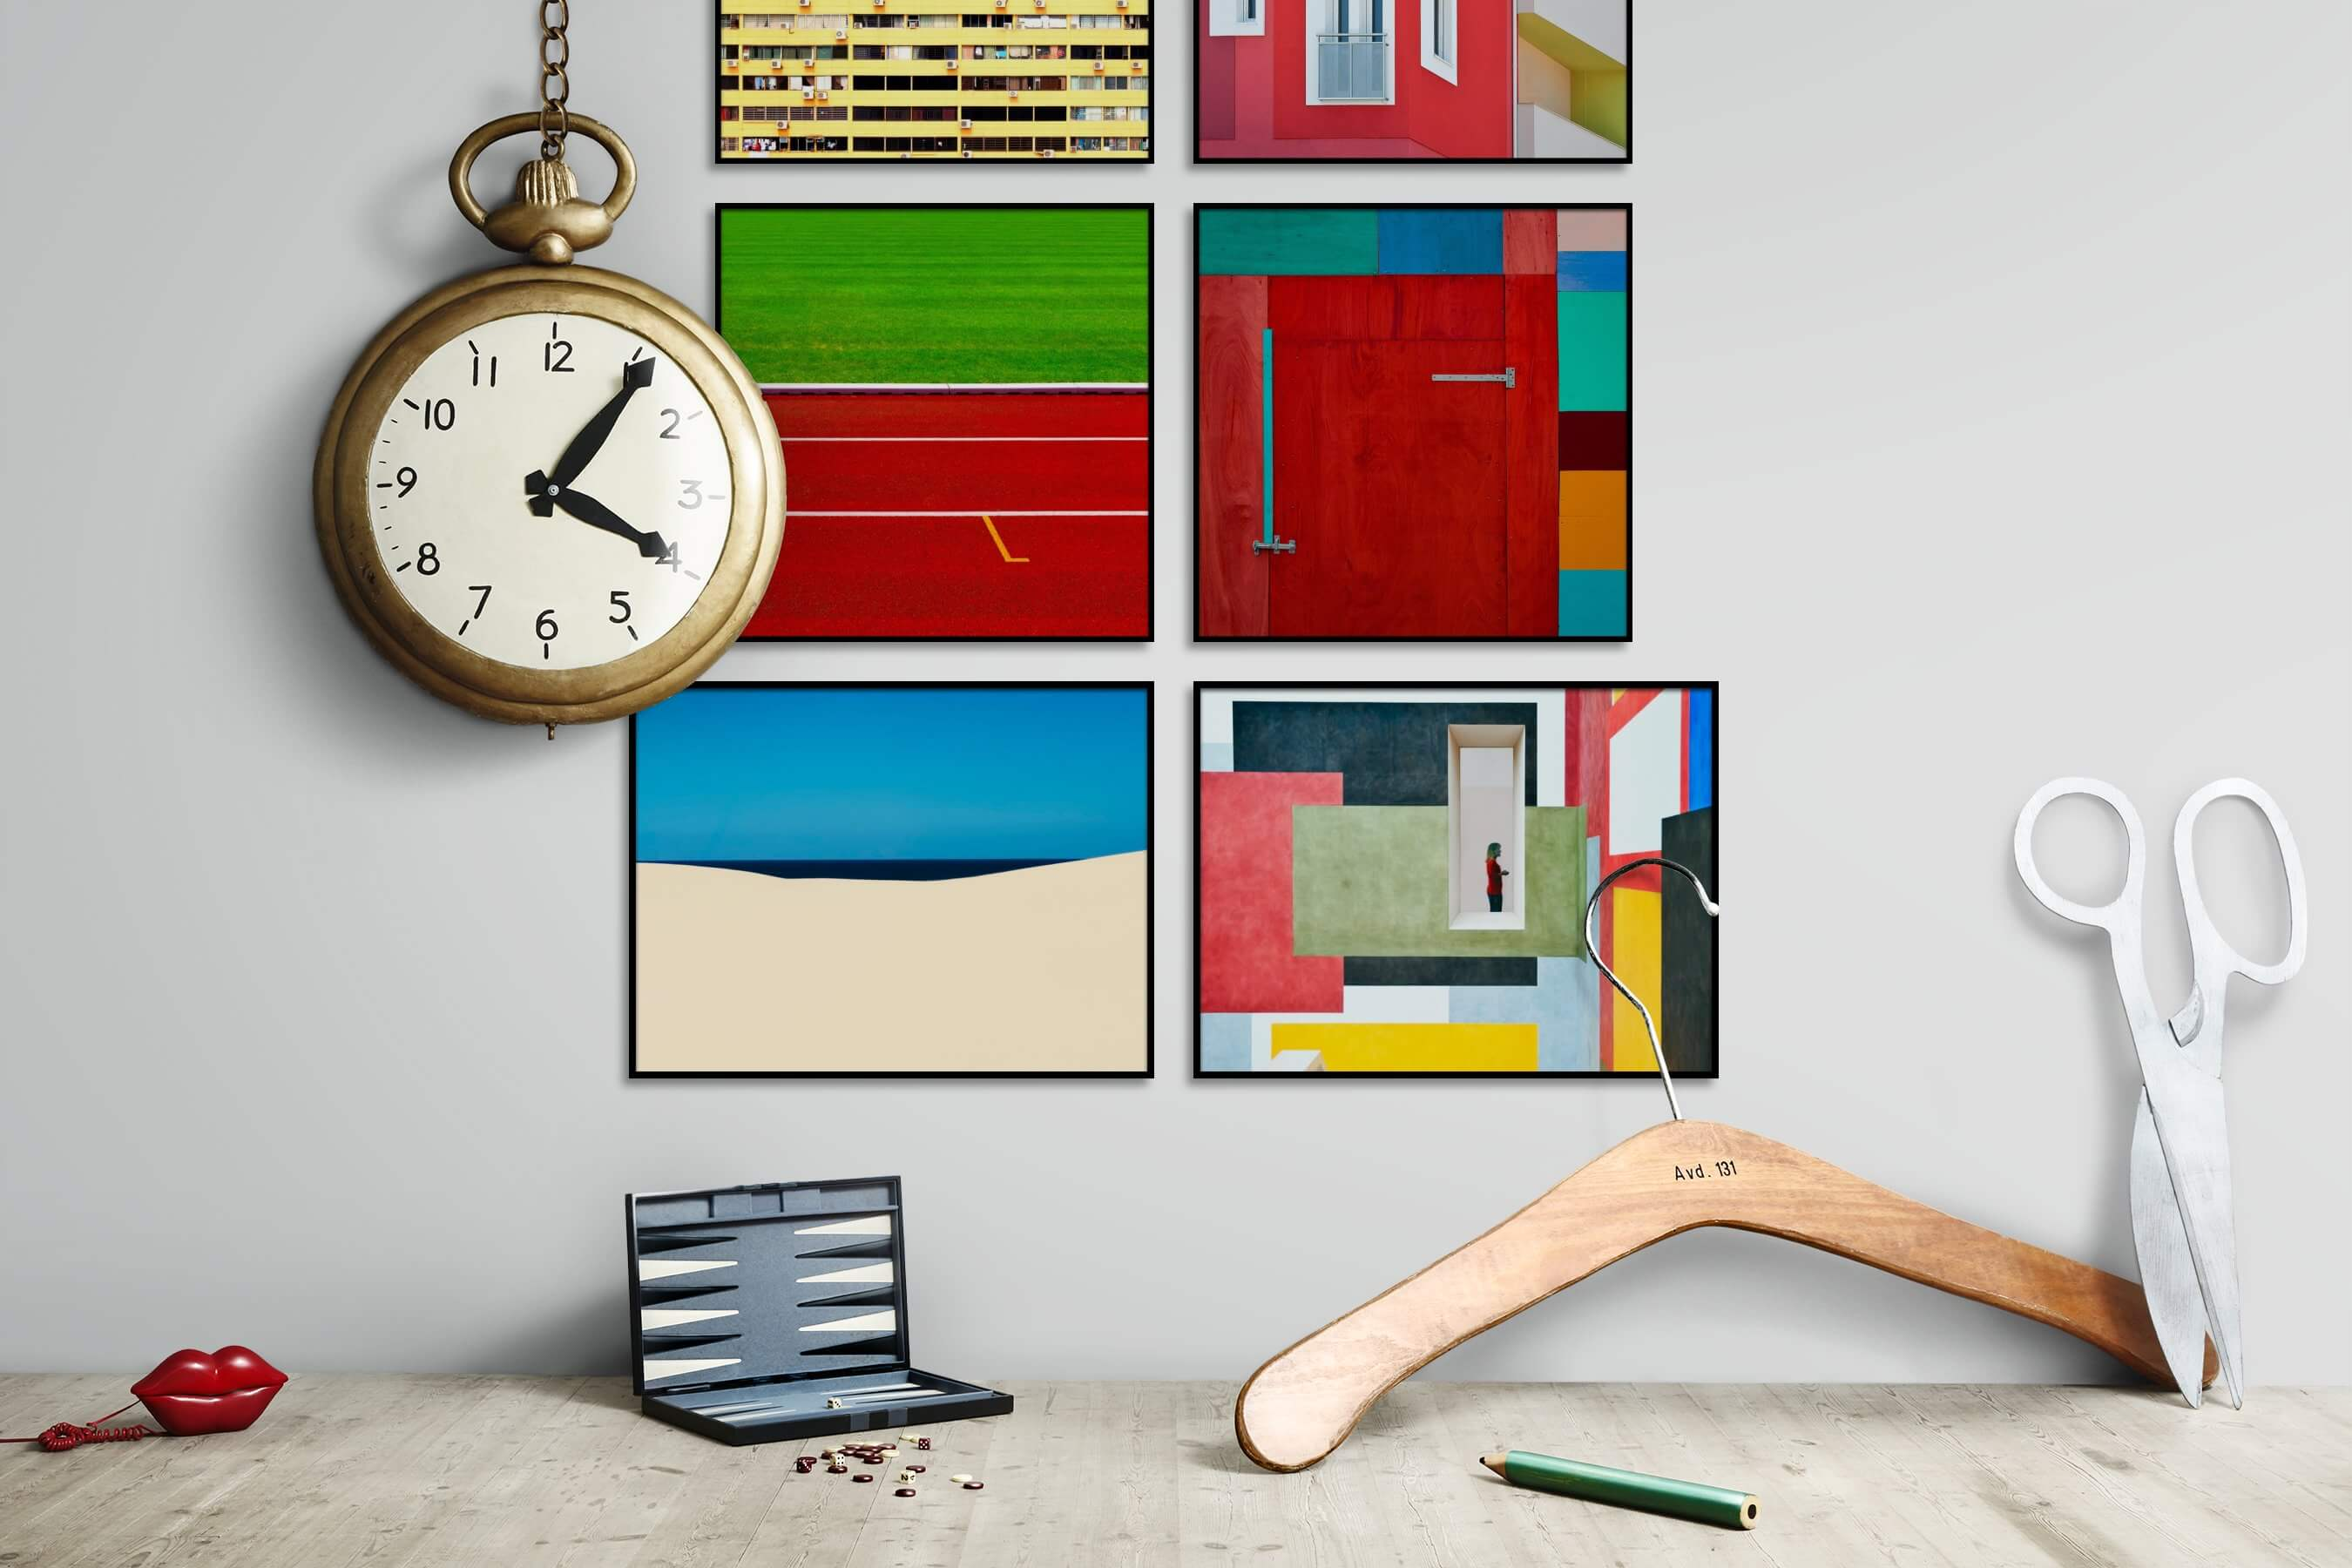 Gallery wall idea with six framed pictures arranged on a wall depicting Colorful, For the Moderate, City Life, For the Minimalist, Nature, and For the Maximalist